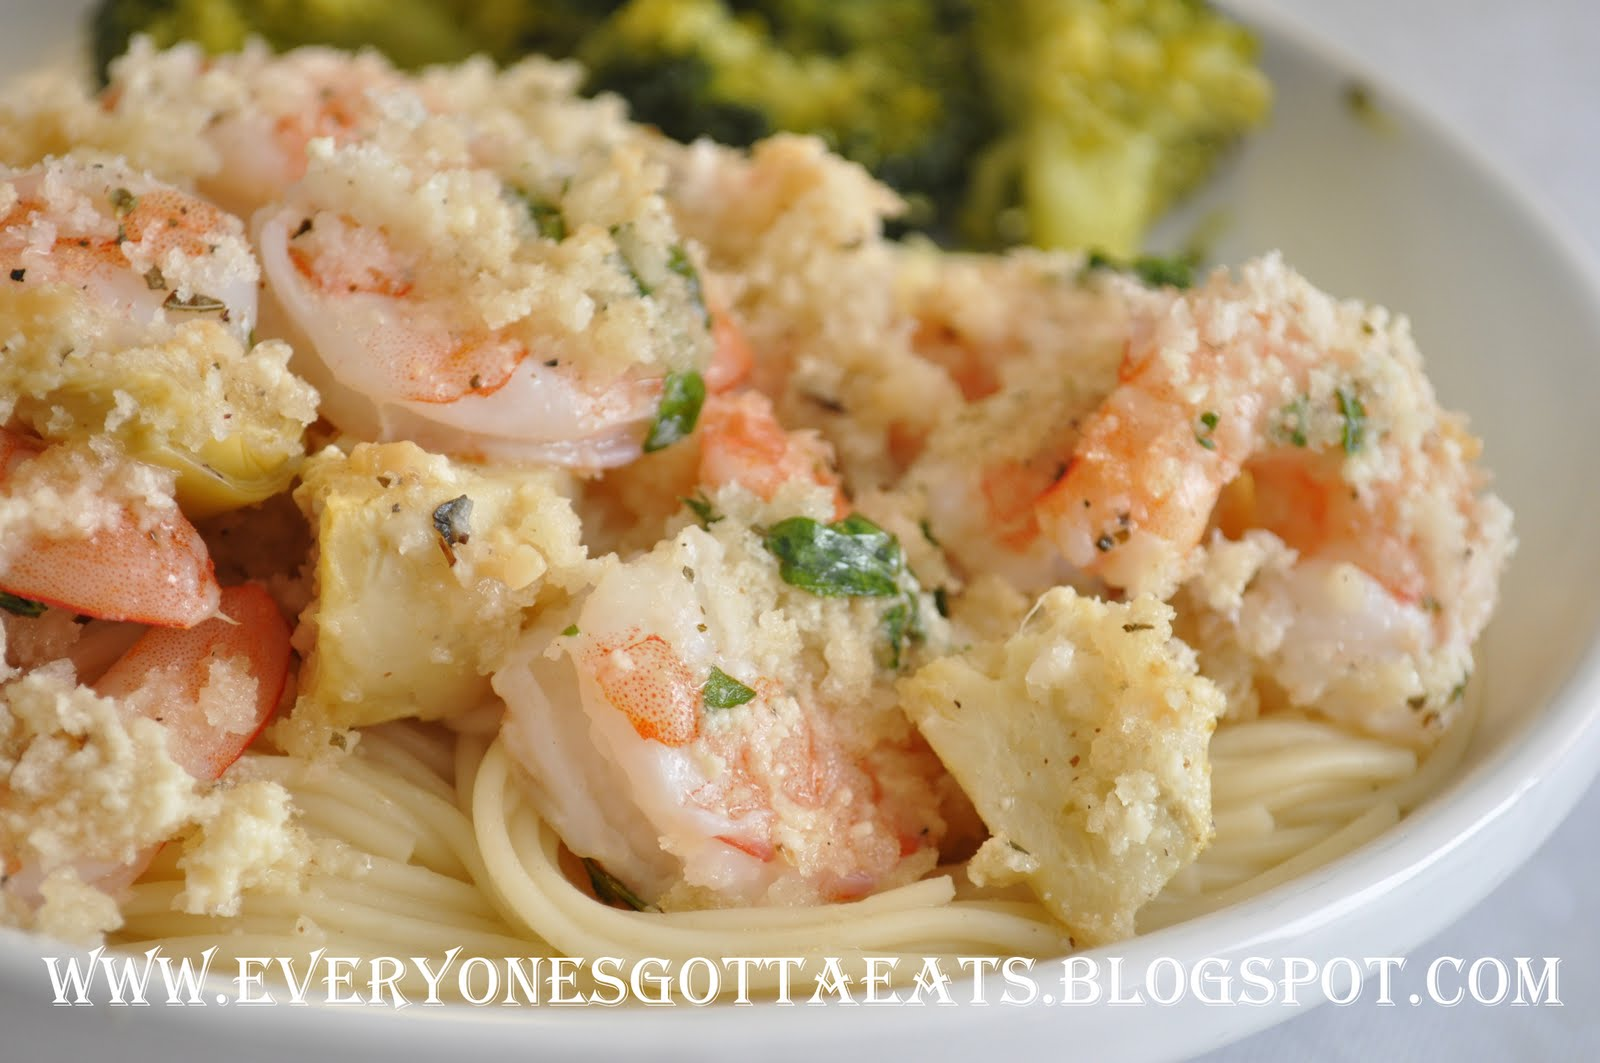 From Tamara's Kitchen...: Shrimp Francesca